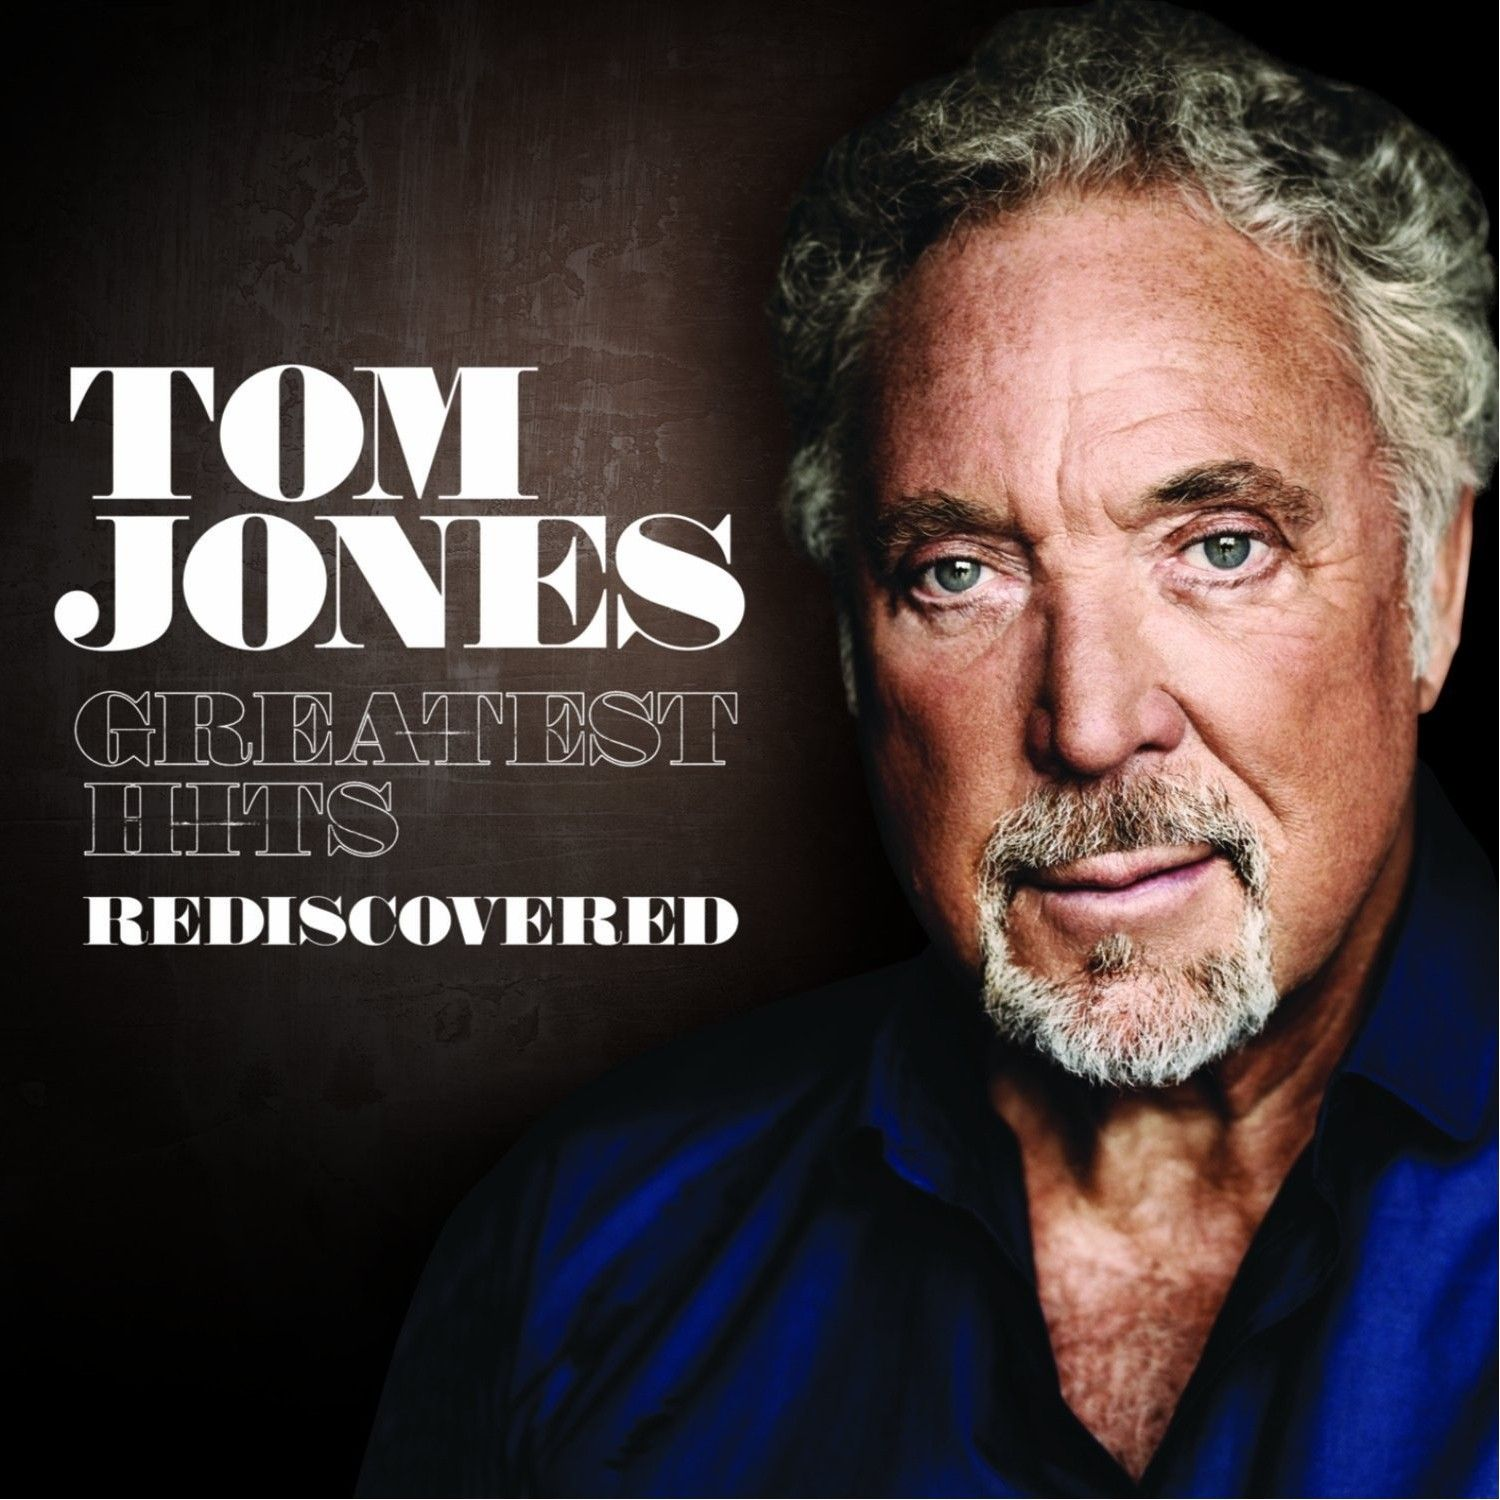 Tom Jones - Greatest Hits Rediscovered album cover